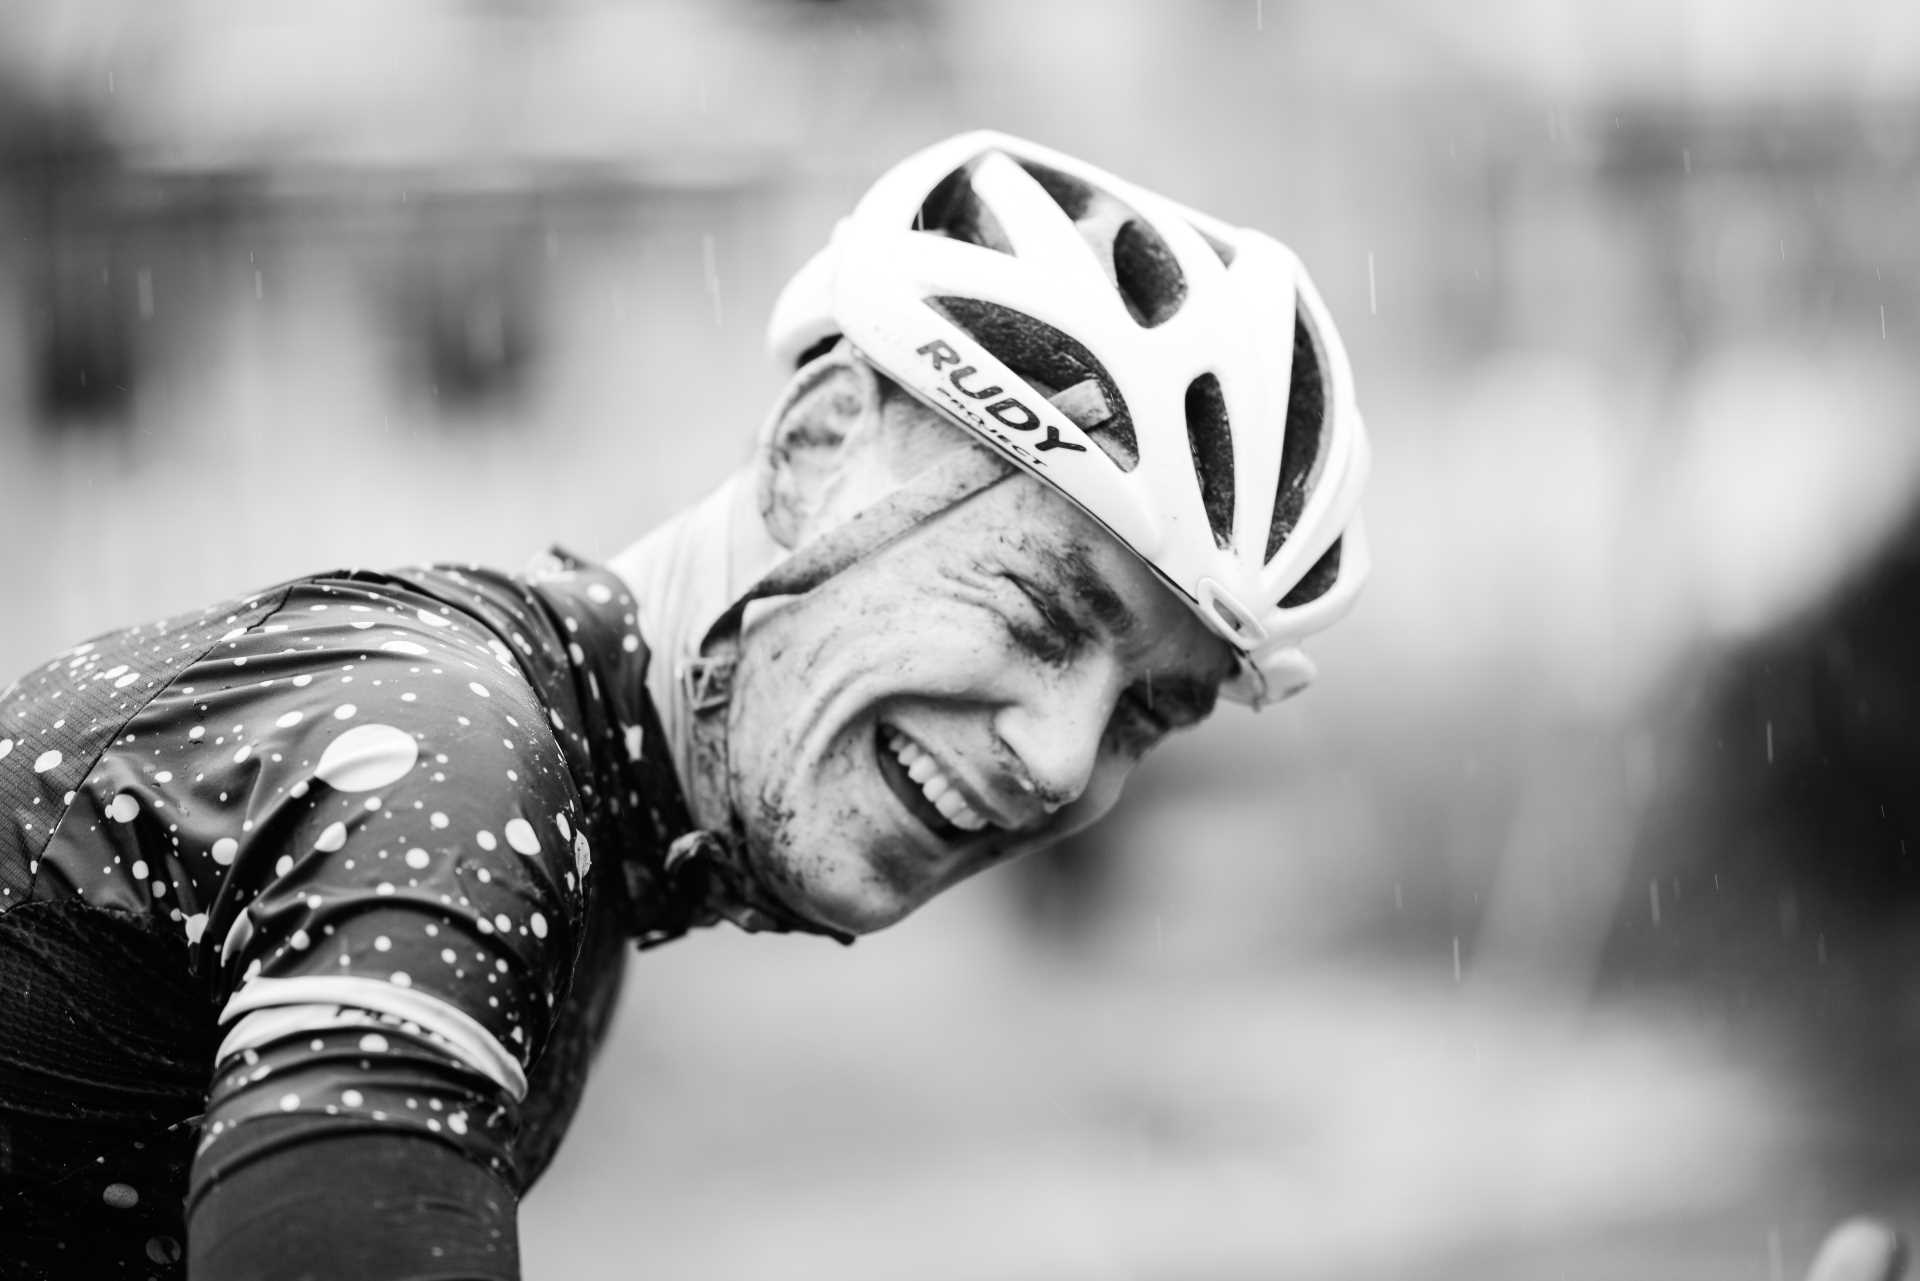 Rookie Rides To Stage Glory In The 2018 Glacier Storms River Traverse